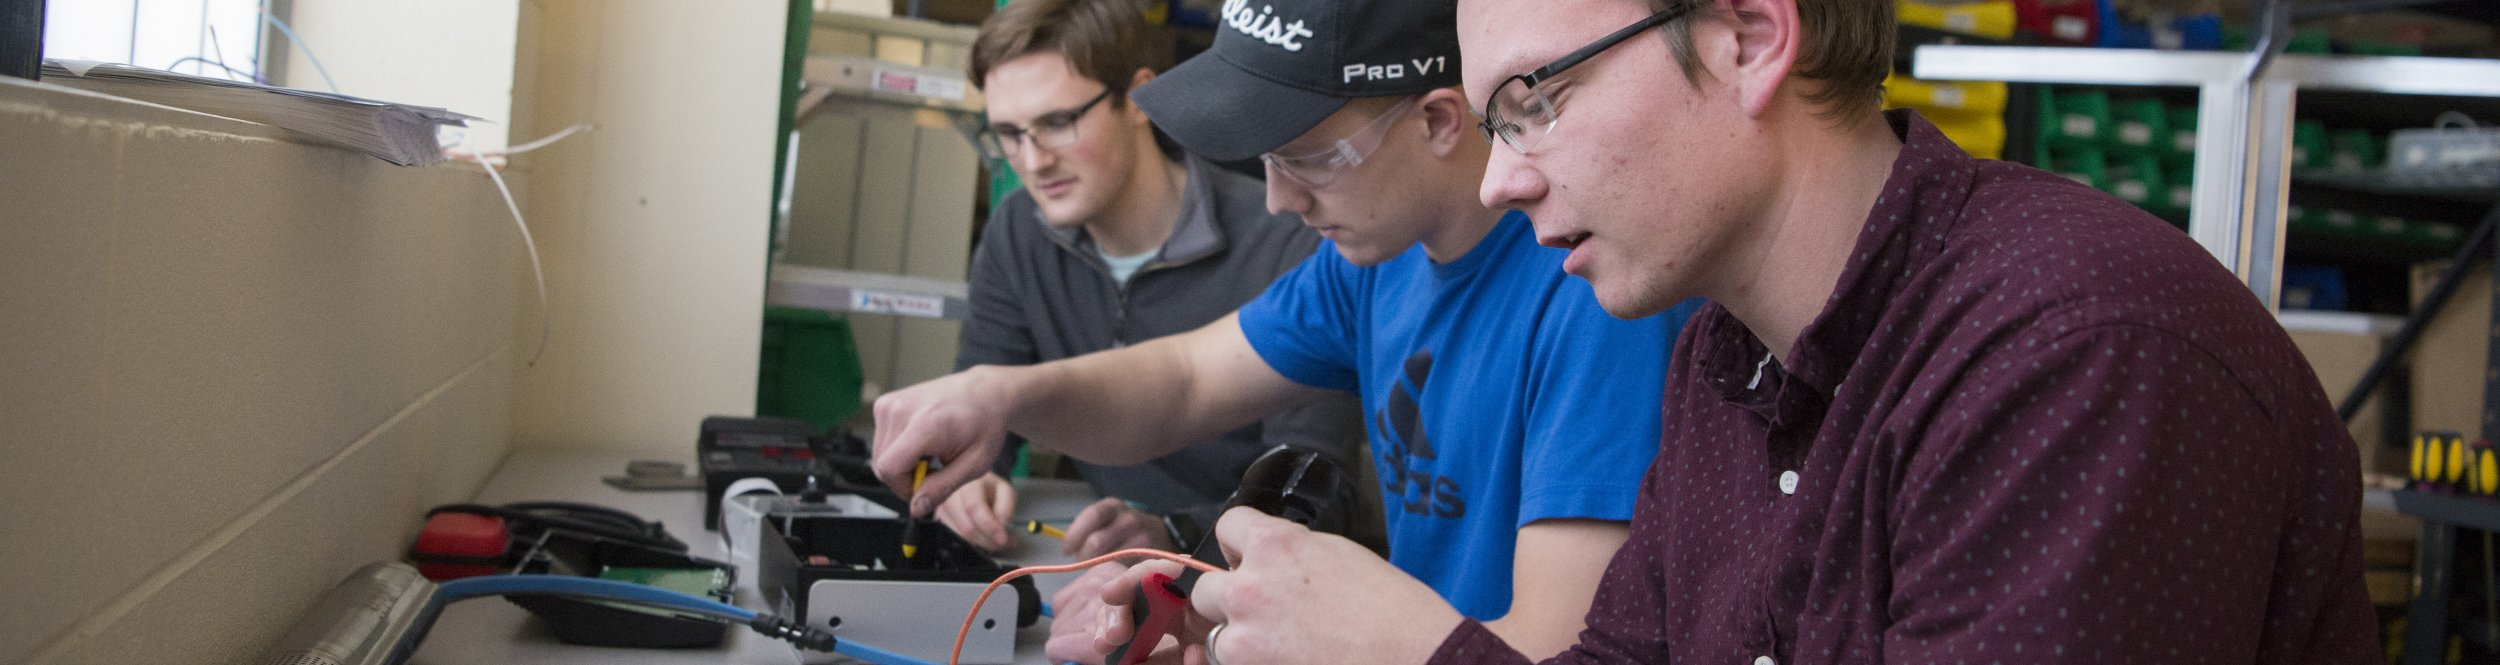 Engineering students work on wires.